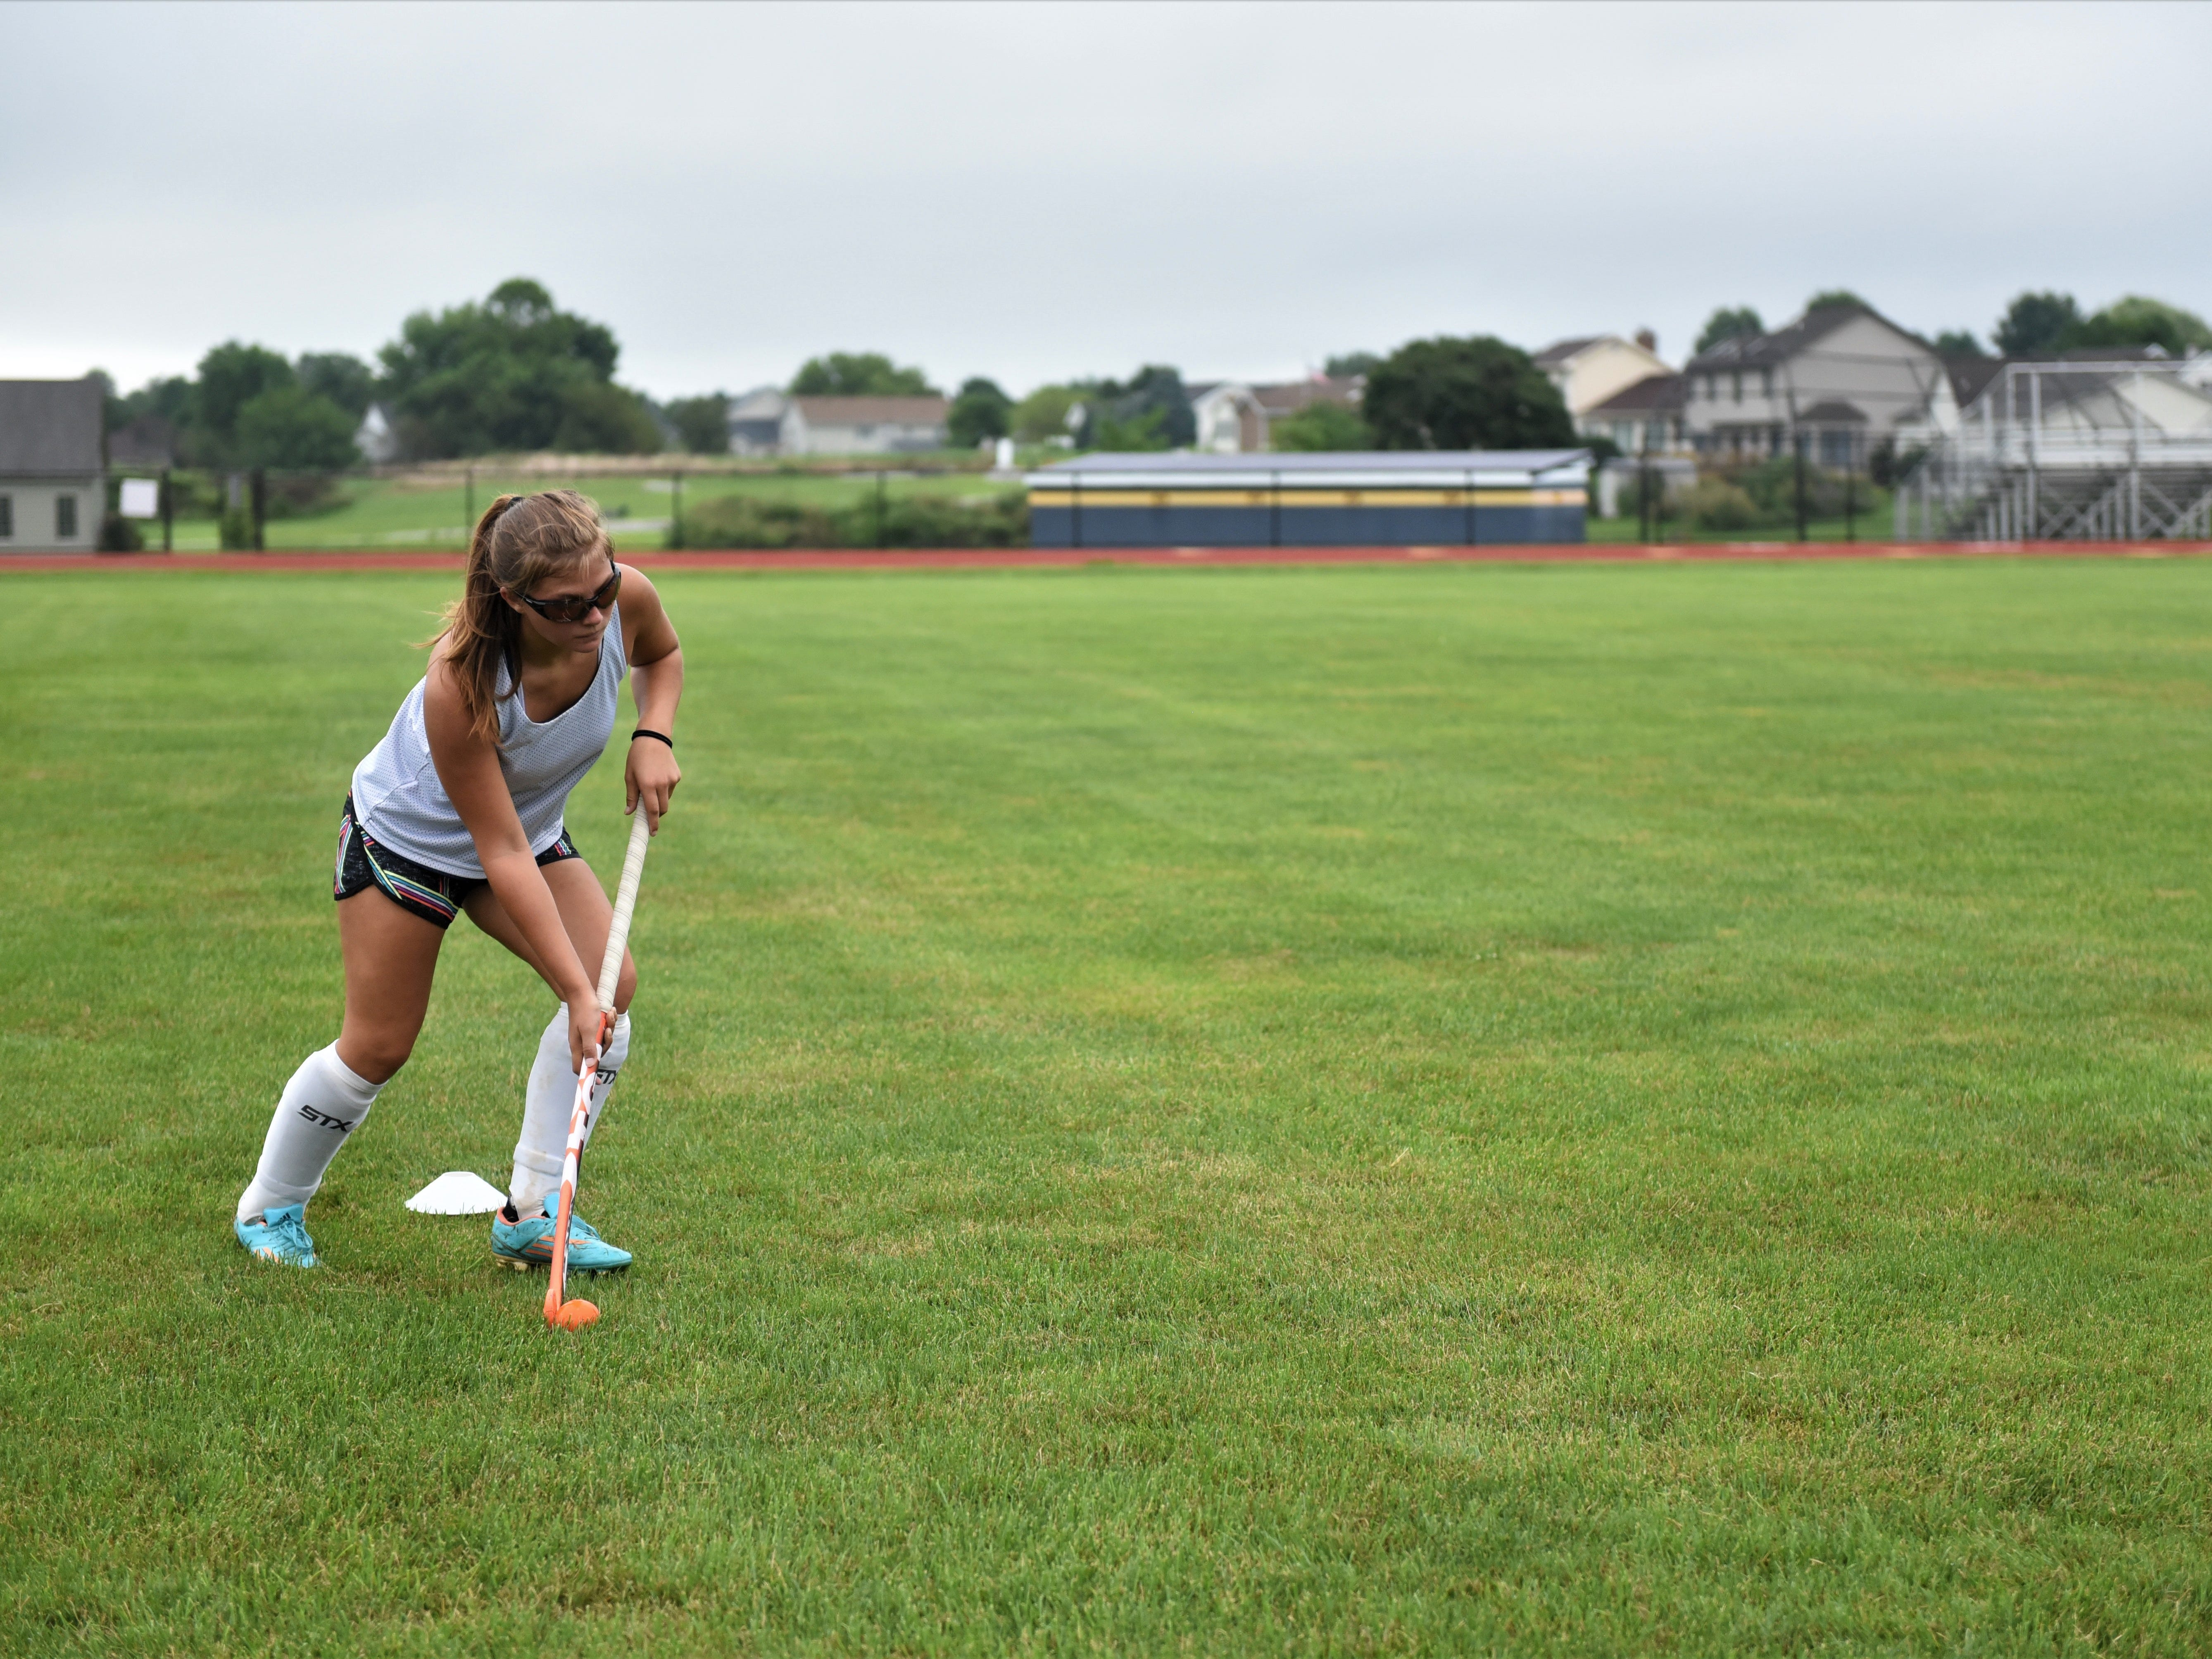 Littlestown field hockey senior, Olivia Hartlaub, practices on the first day of fall sports on Monday, Aug. 13, 2018.